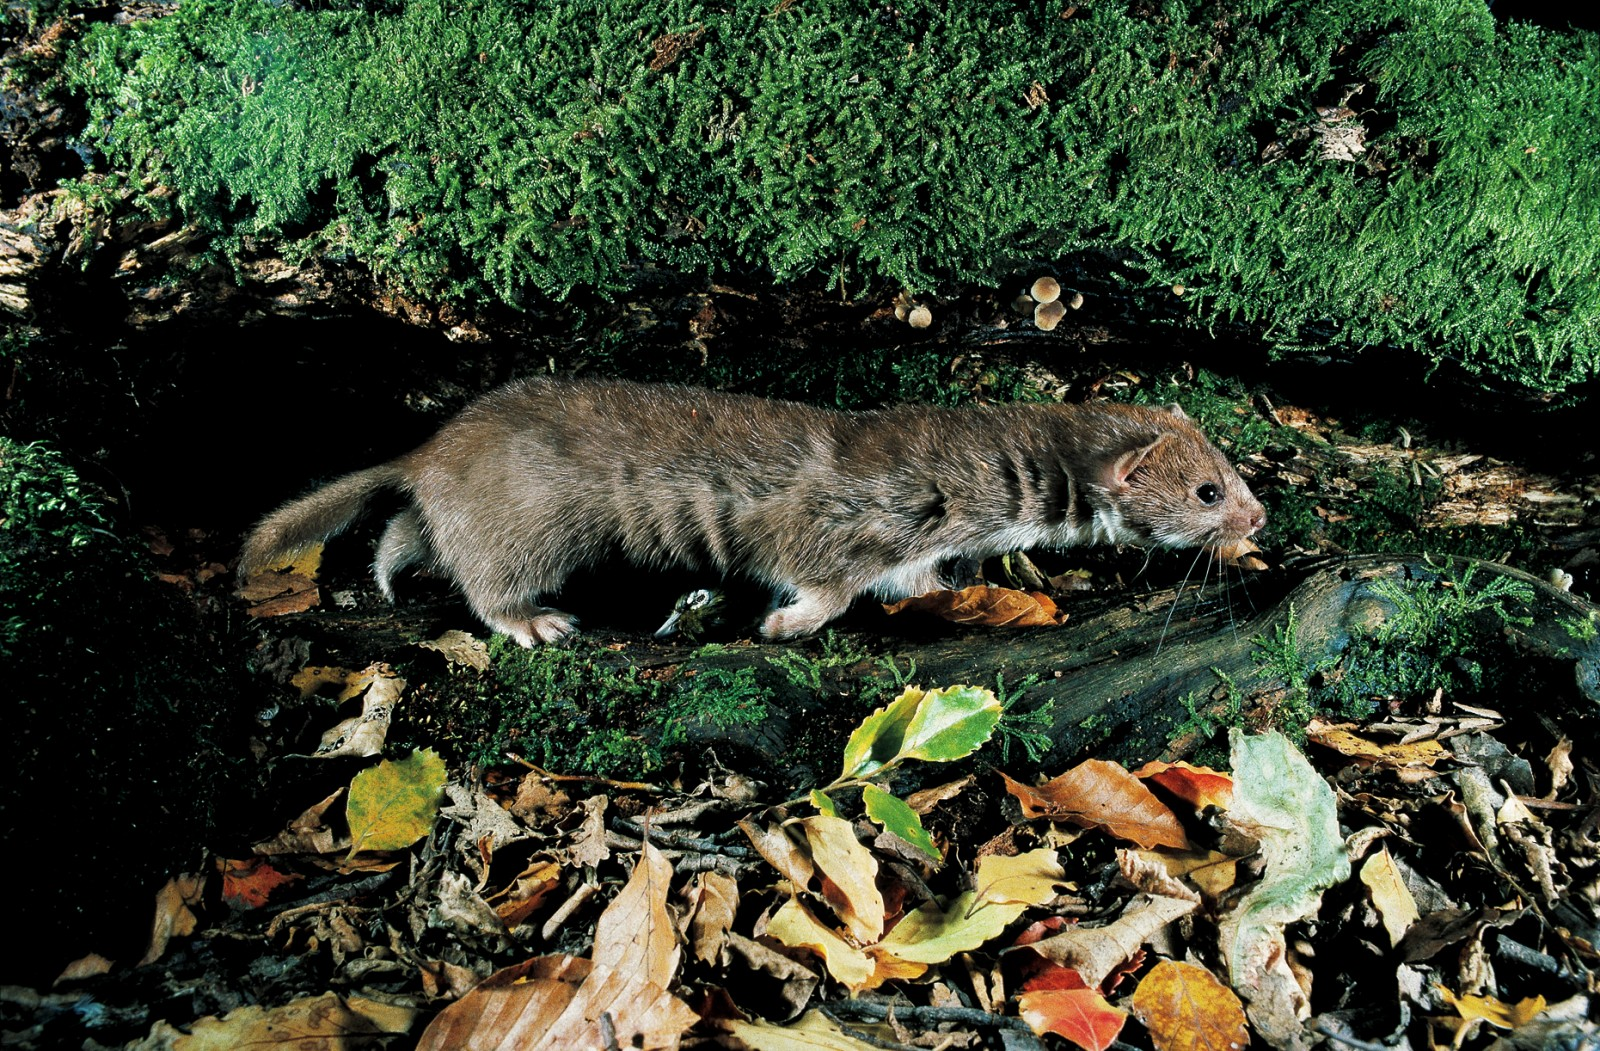 Weasels are shorter than stoats, weigh only a third as much, and have shorter tails.